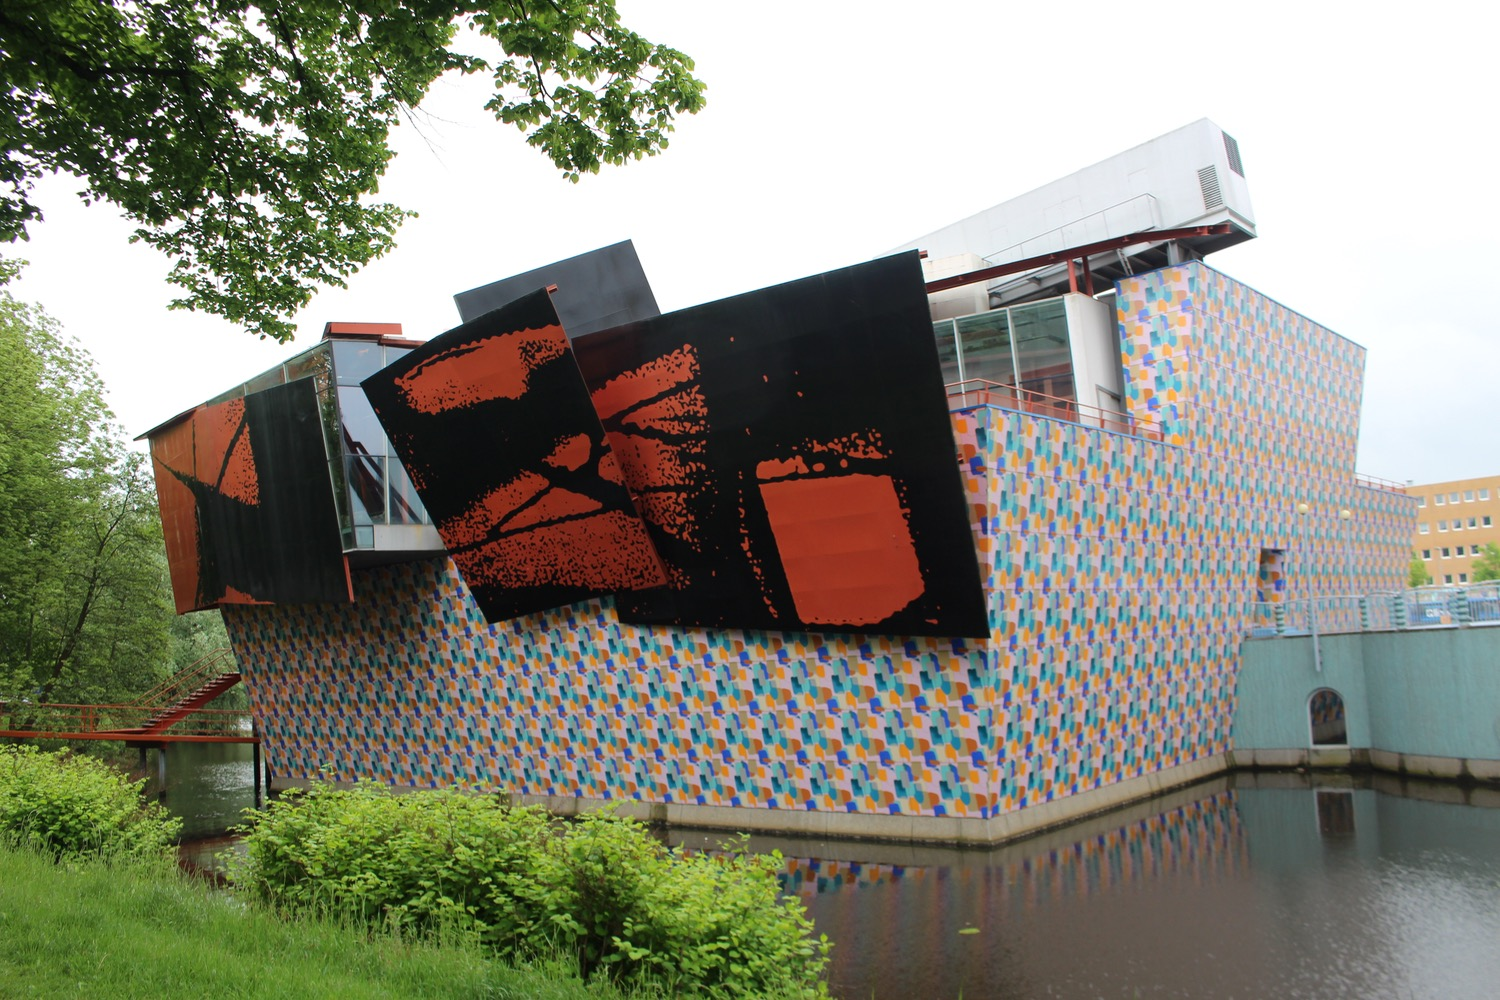 COLORFUL MODERN GRONINGER MUSEUM SET GENTLY ON THE CANAL